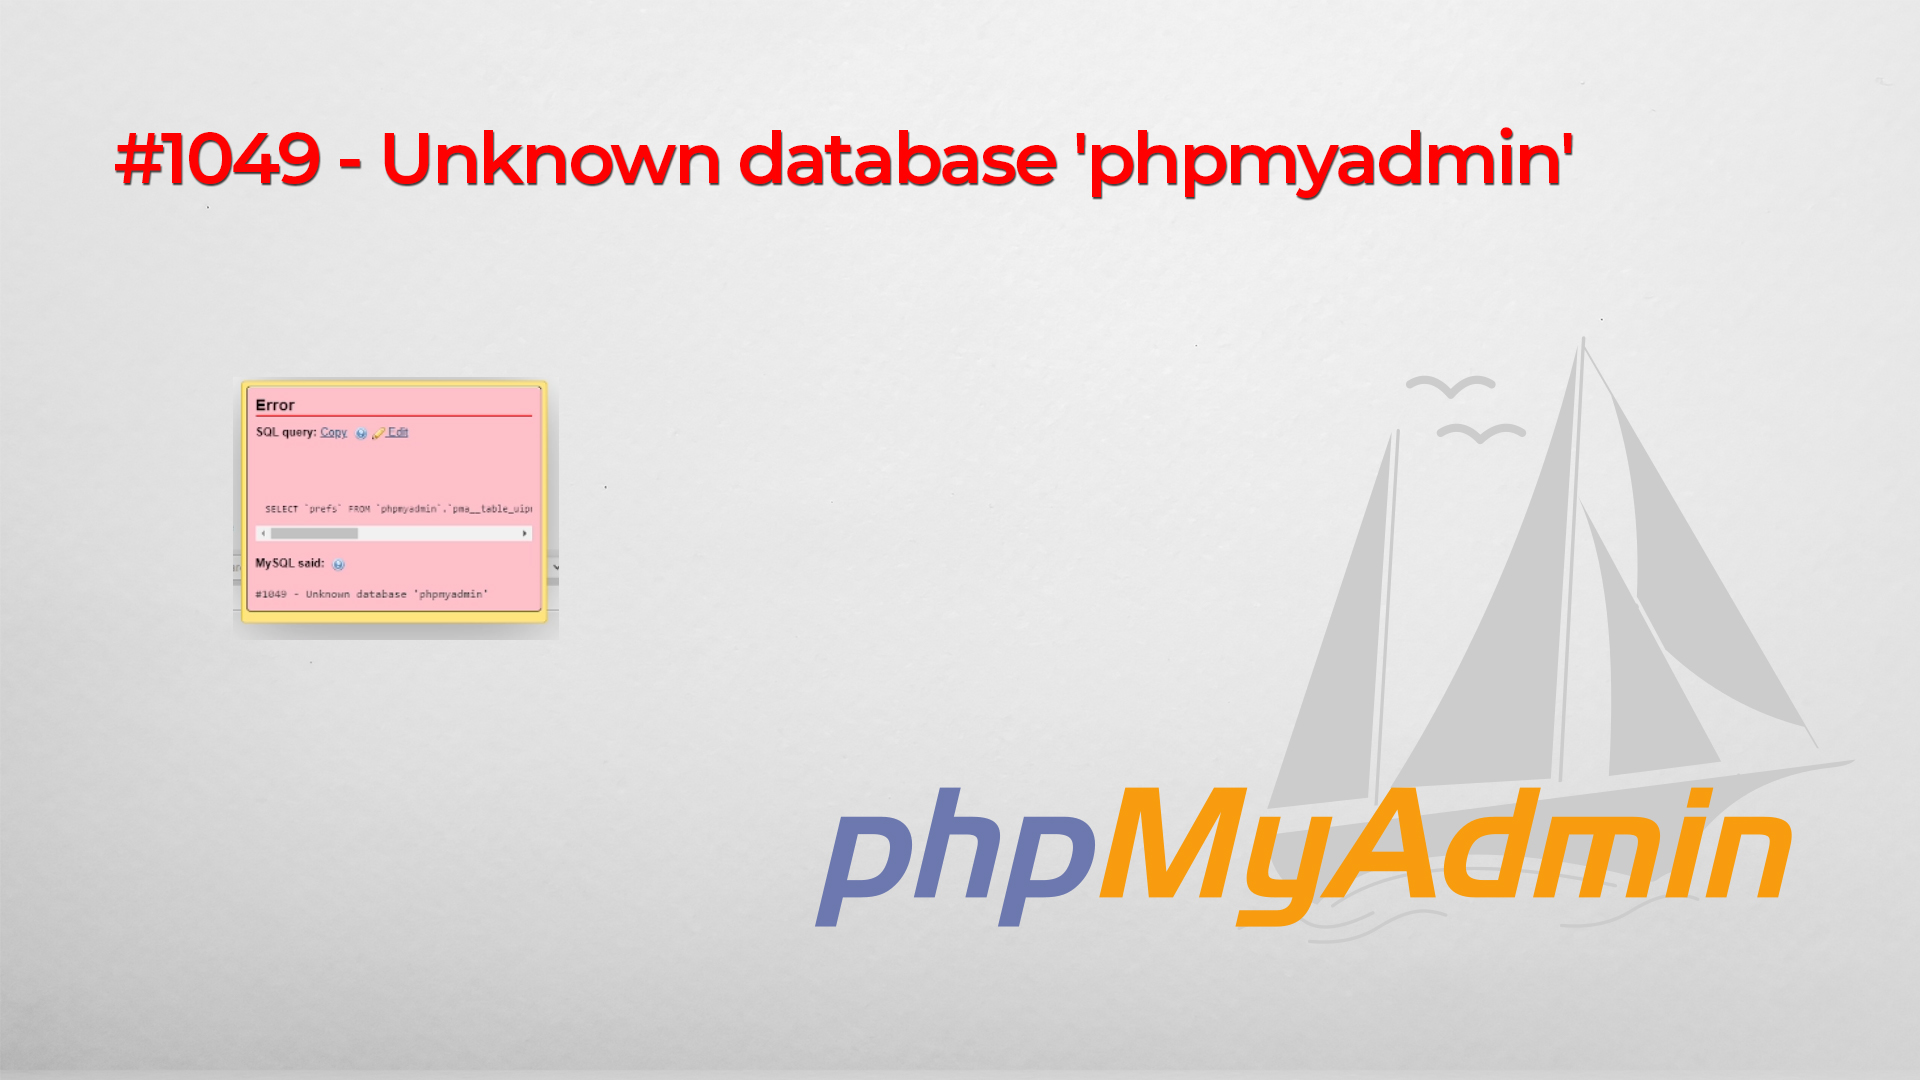 #1049 Unknown database : how to fix the #1049 - Unknown database. error in mysql mphpmyadmin